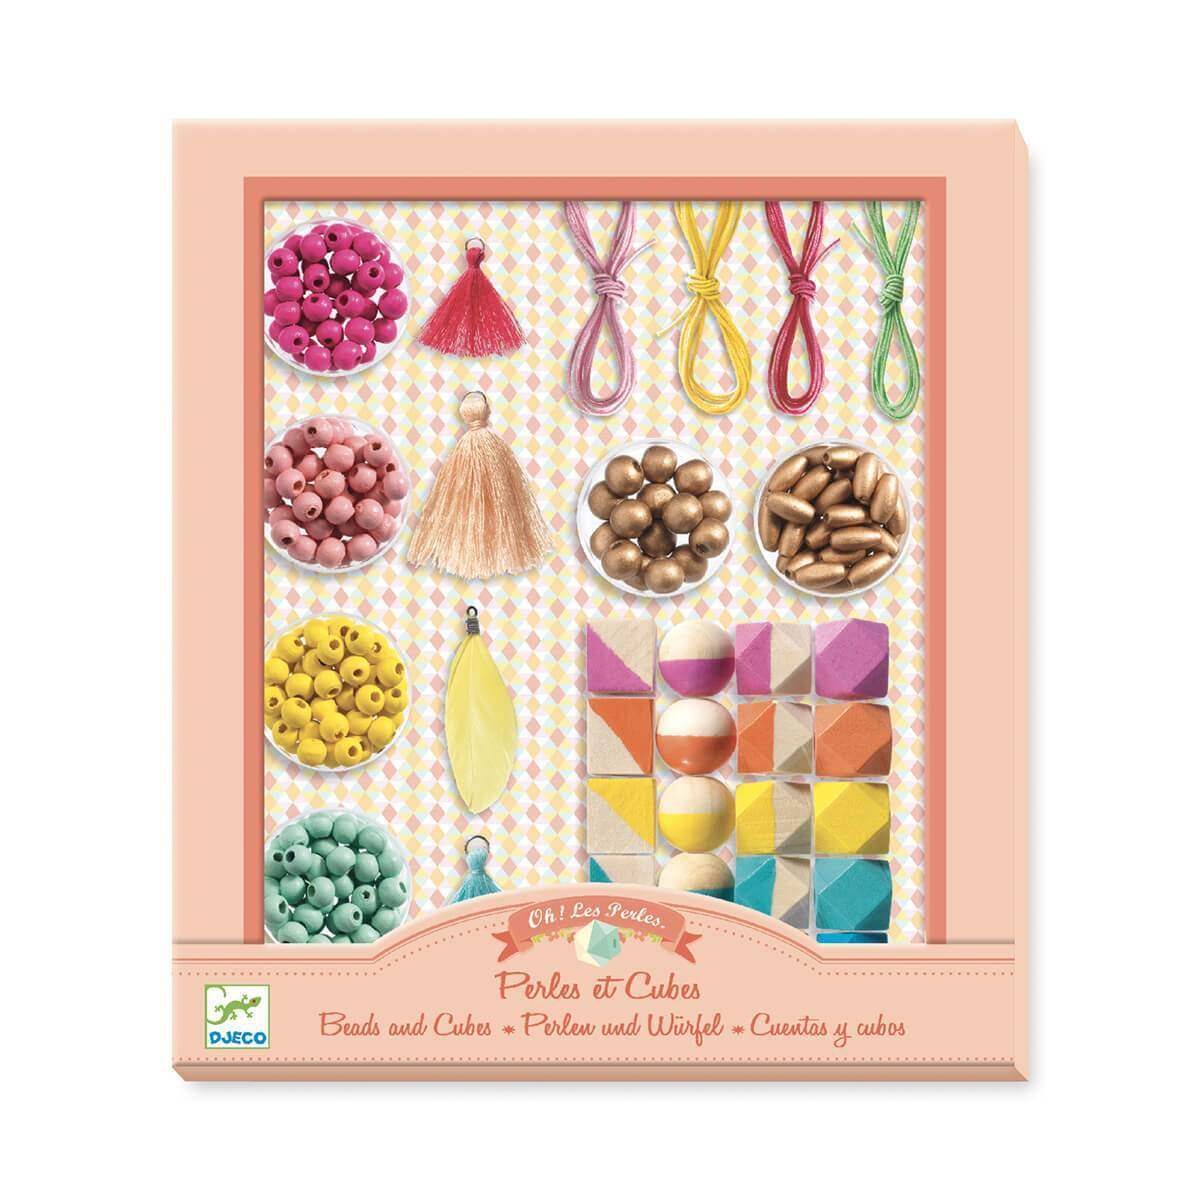 Djeco Oh! Les Pearles Beads and Cubes Jewellery Kit